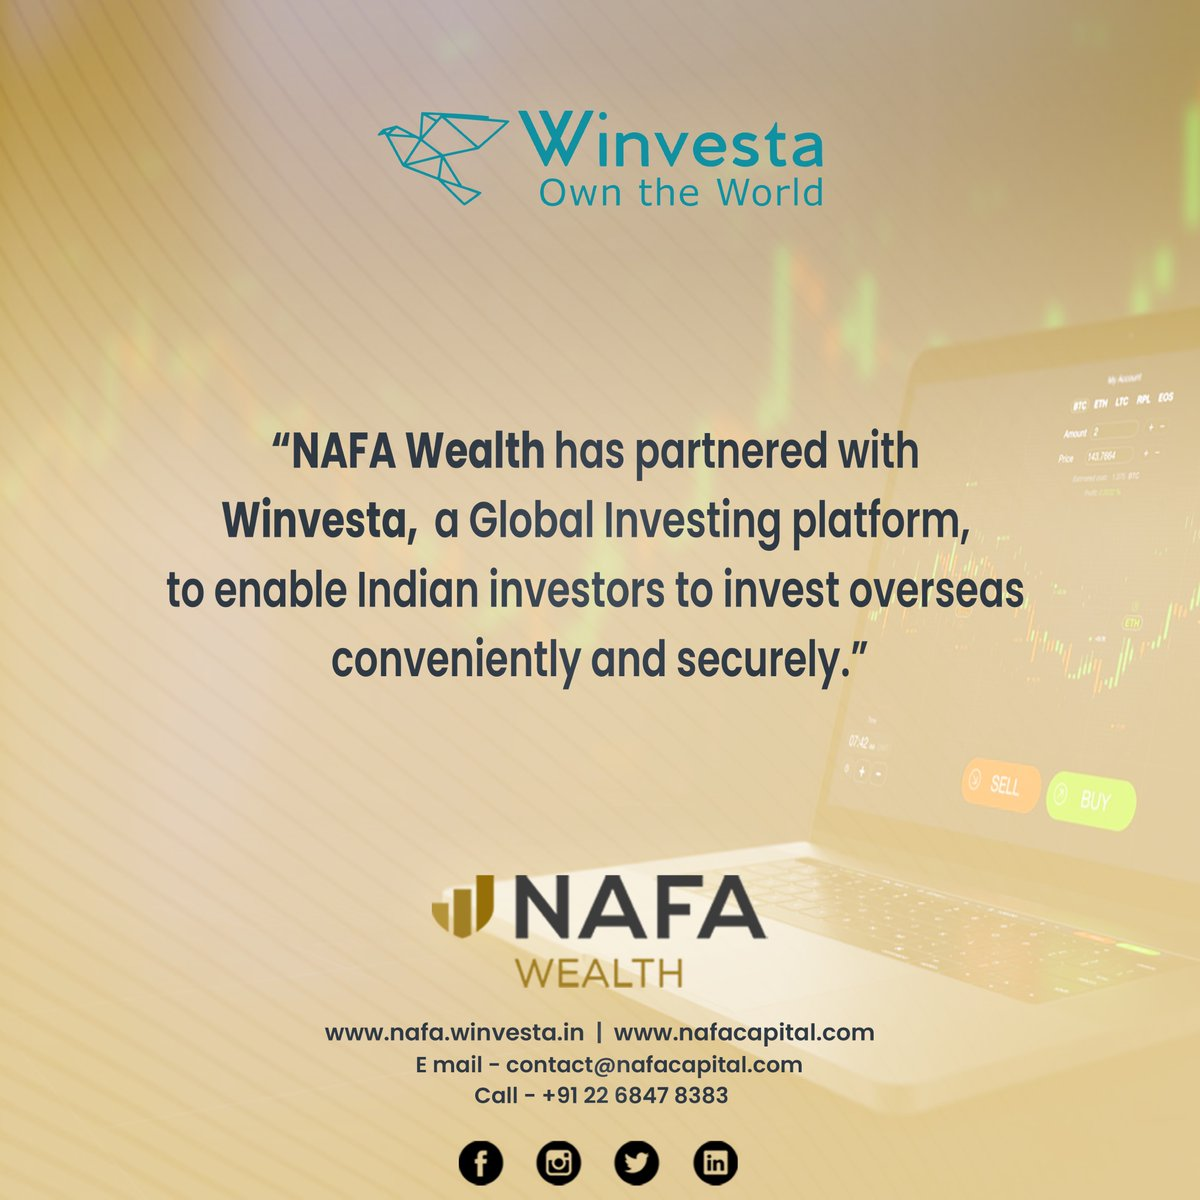 Glad to announce our partnership with @Winvesta  @ameyaprabhu    #wealthmanagment #wealthbuilding #portfoliomanagement #investments #globalinvestment https://t.co/Sfg9zL4Ejn